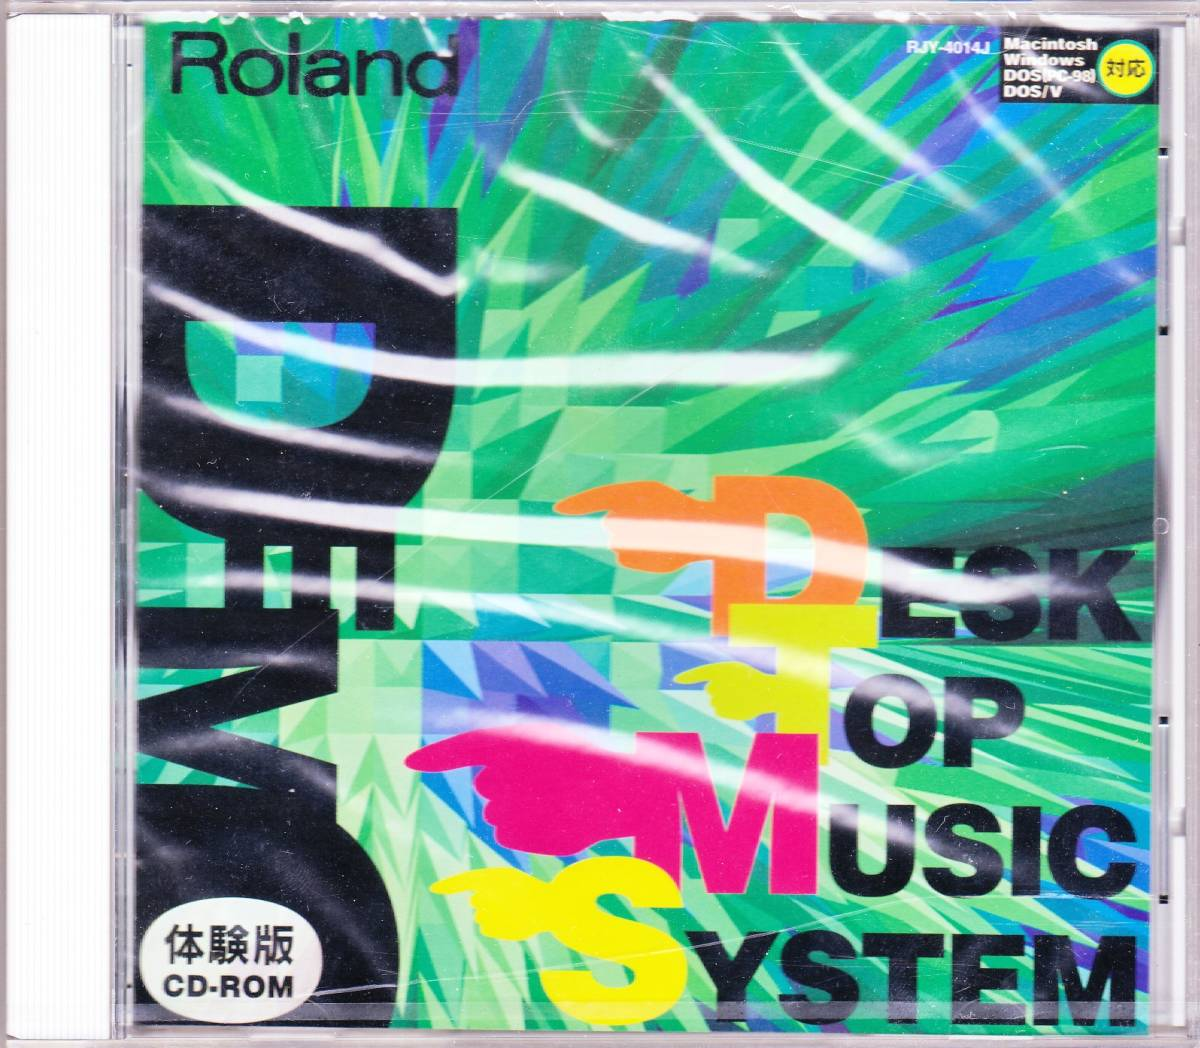 roldand demo cd 1.jpg